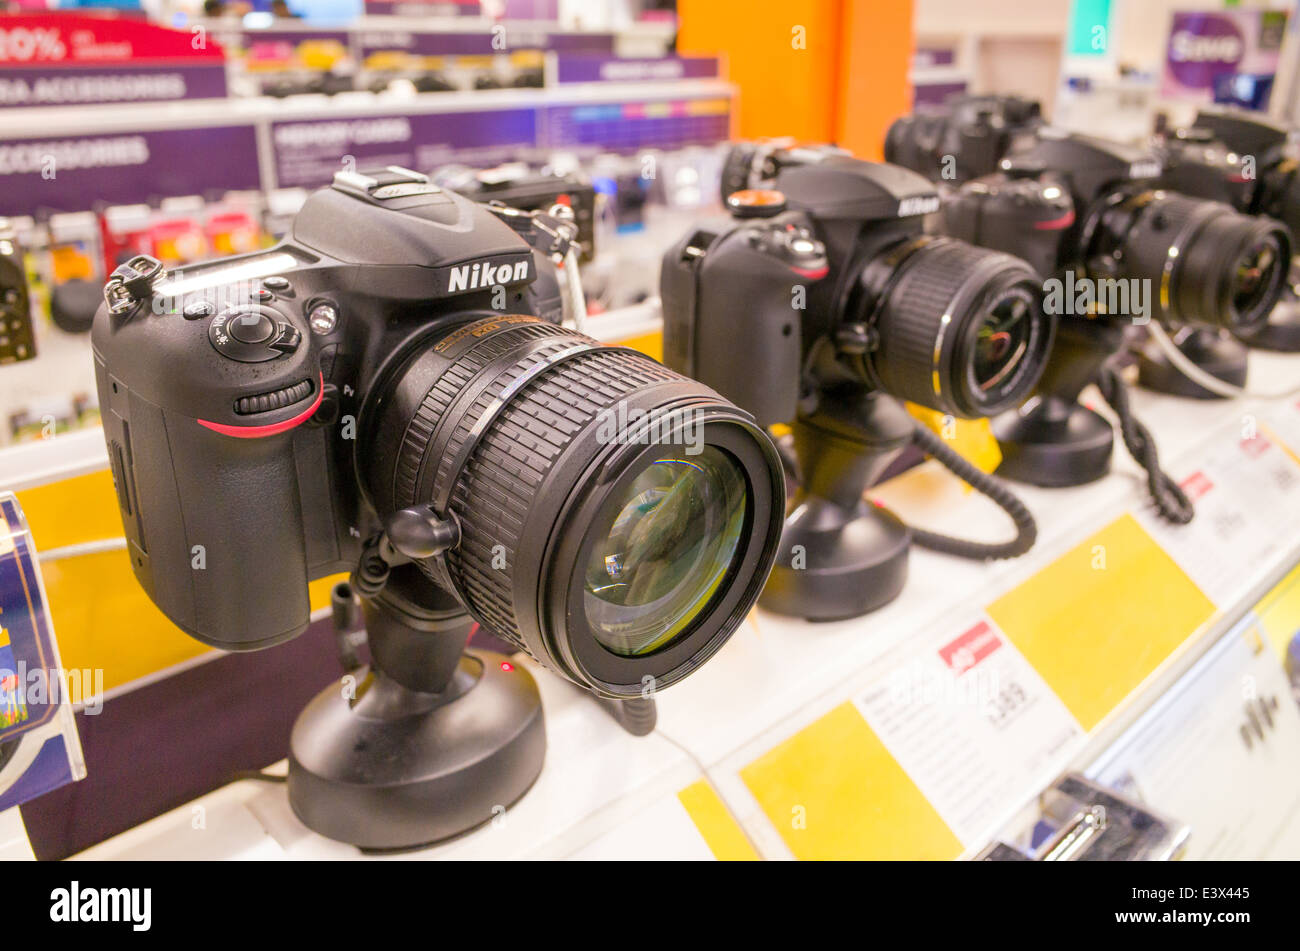 Nikon DSLR cameras on display at Currys PC World, England, UK - Stock Image